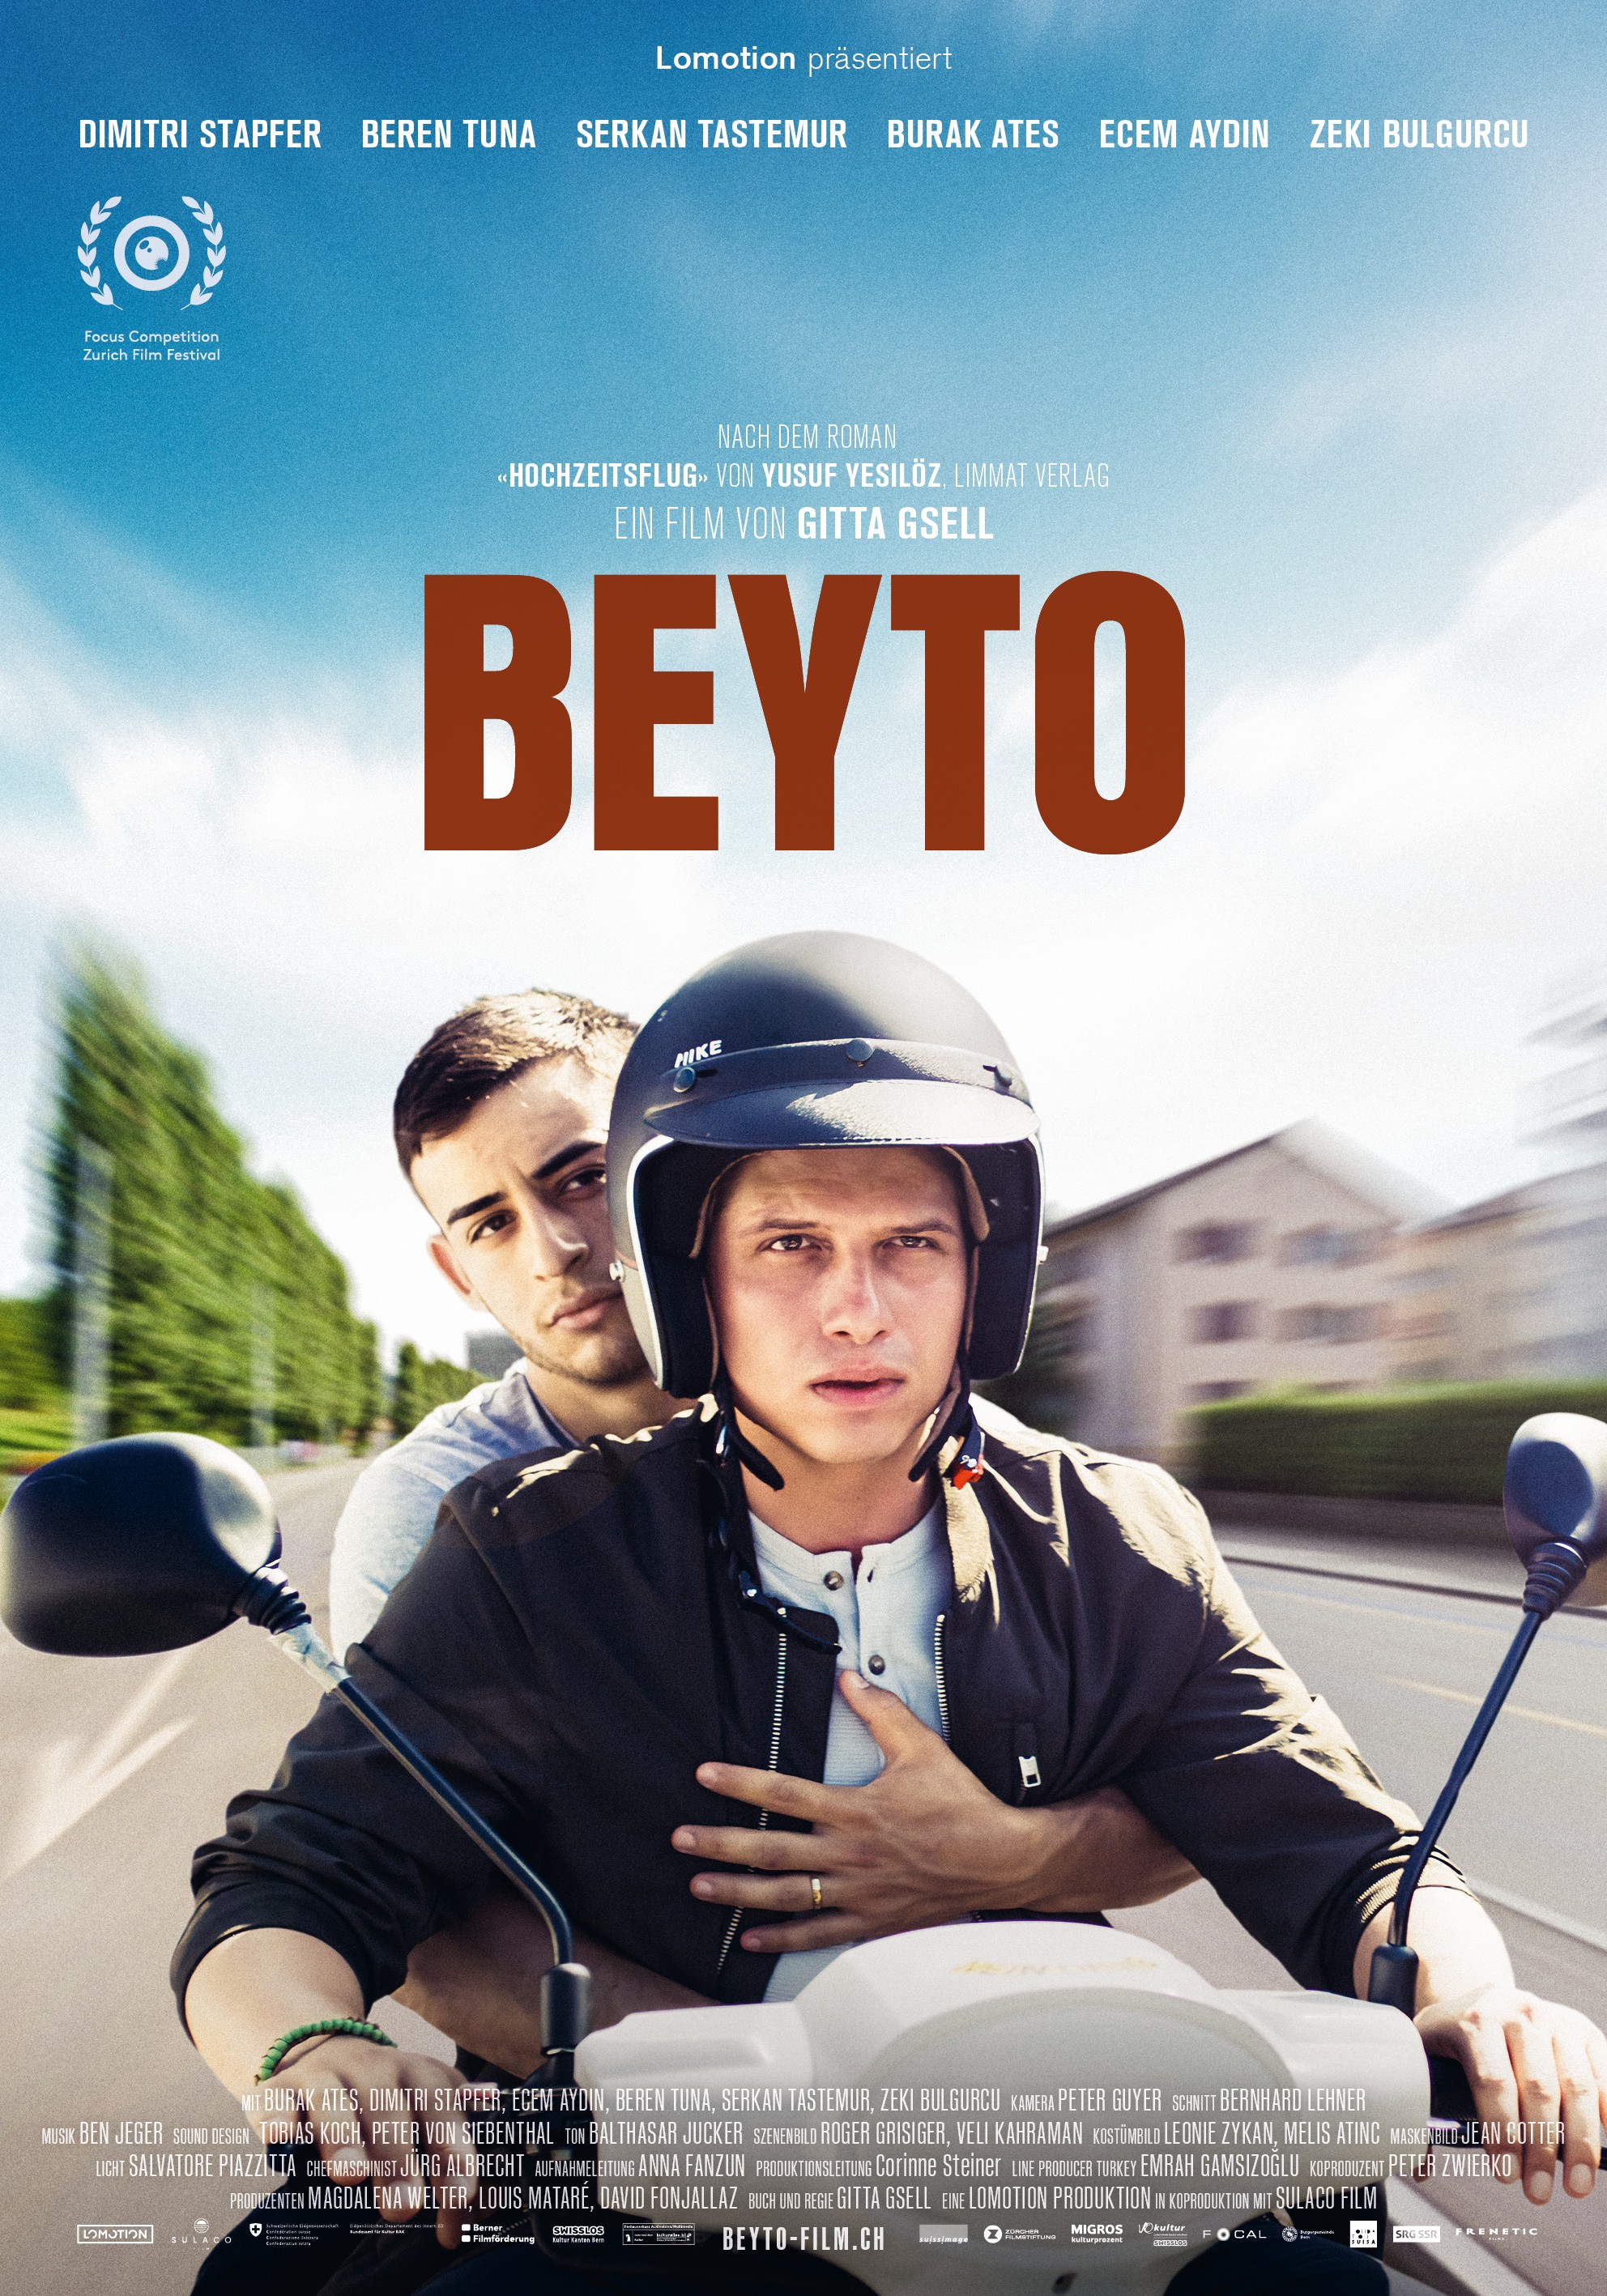 Beyto Ganzer Film Streaming Kostenfreier By Quinn Field Mar 2021 Medium